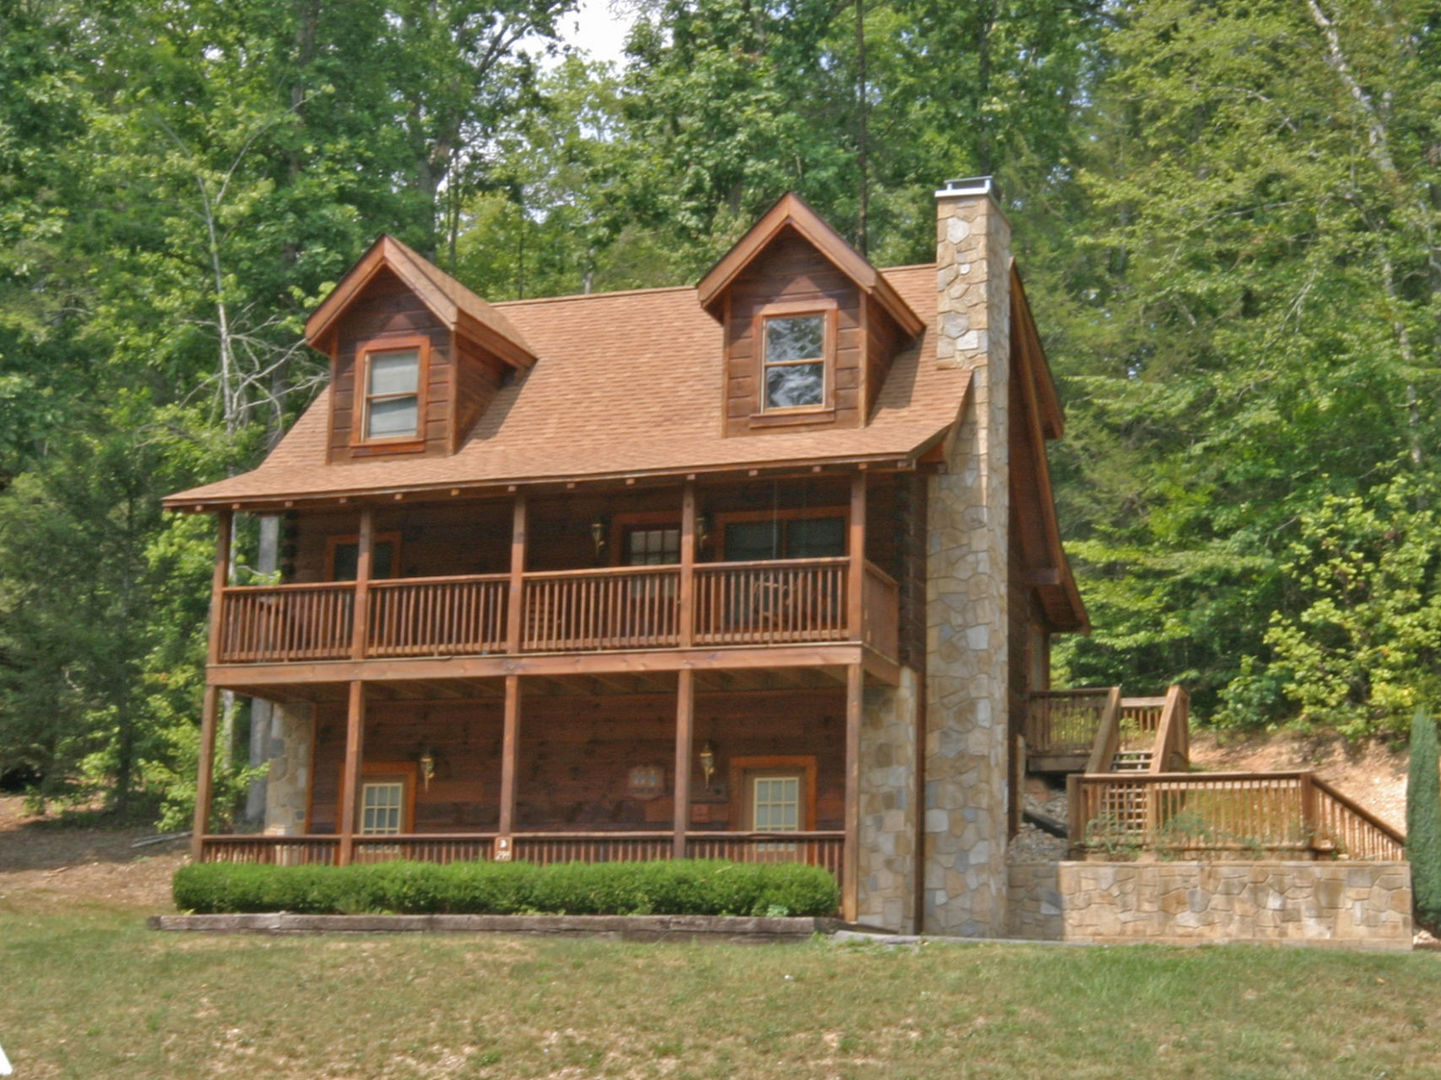 Pigeon forge cabins possum hollow 4 bedroom for Pigeon forge cabins with fishing